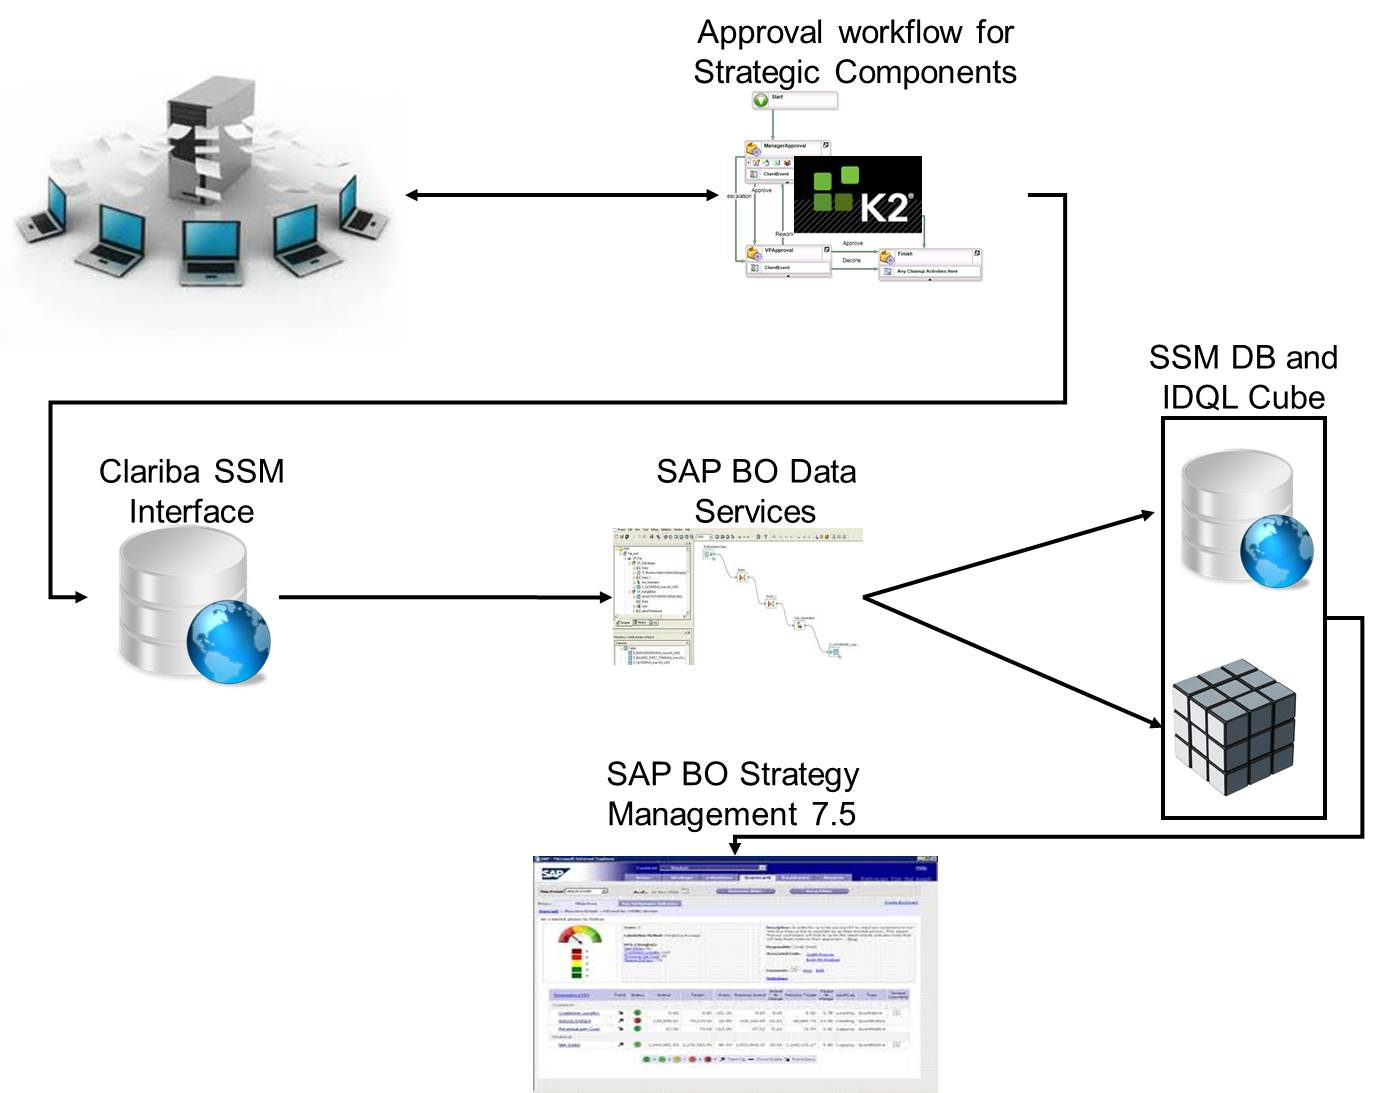 SAP Strategy Management: When the Customization Generates